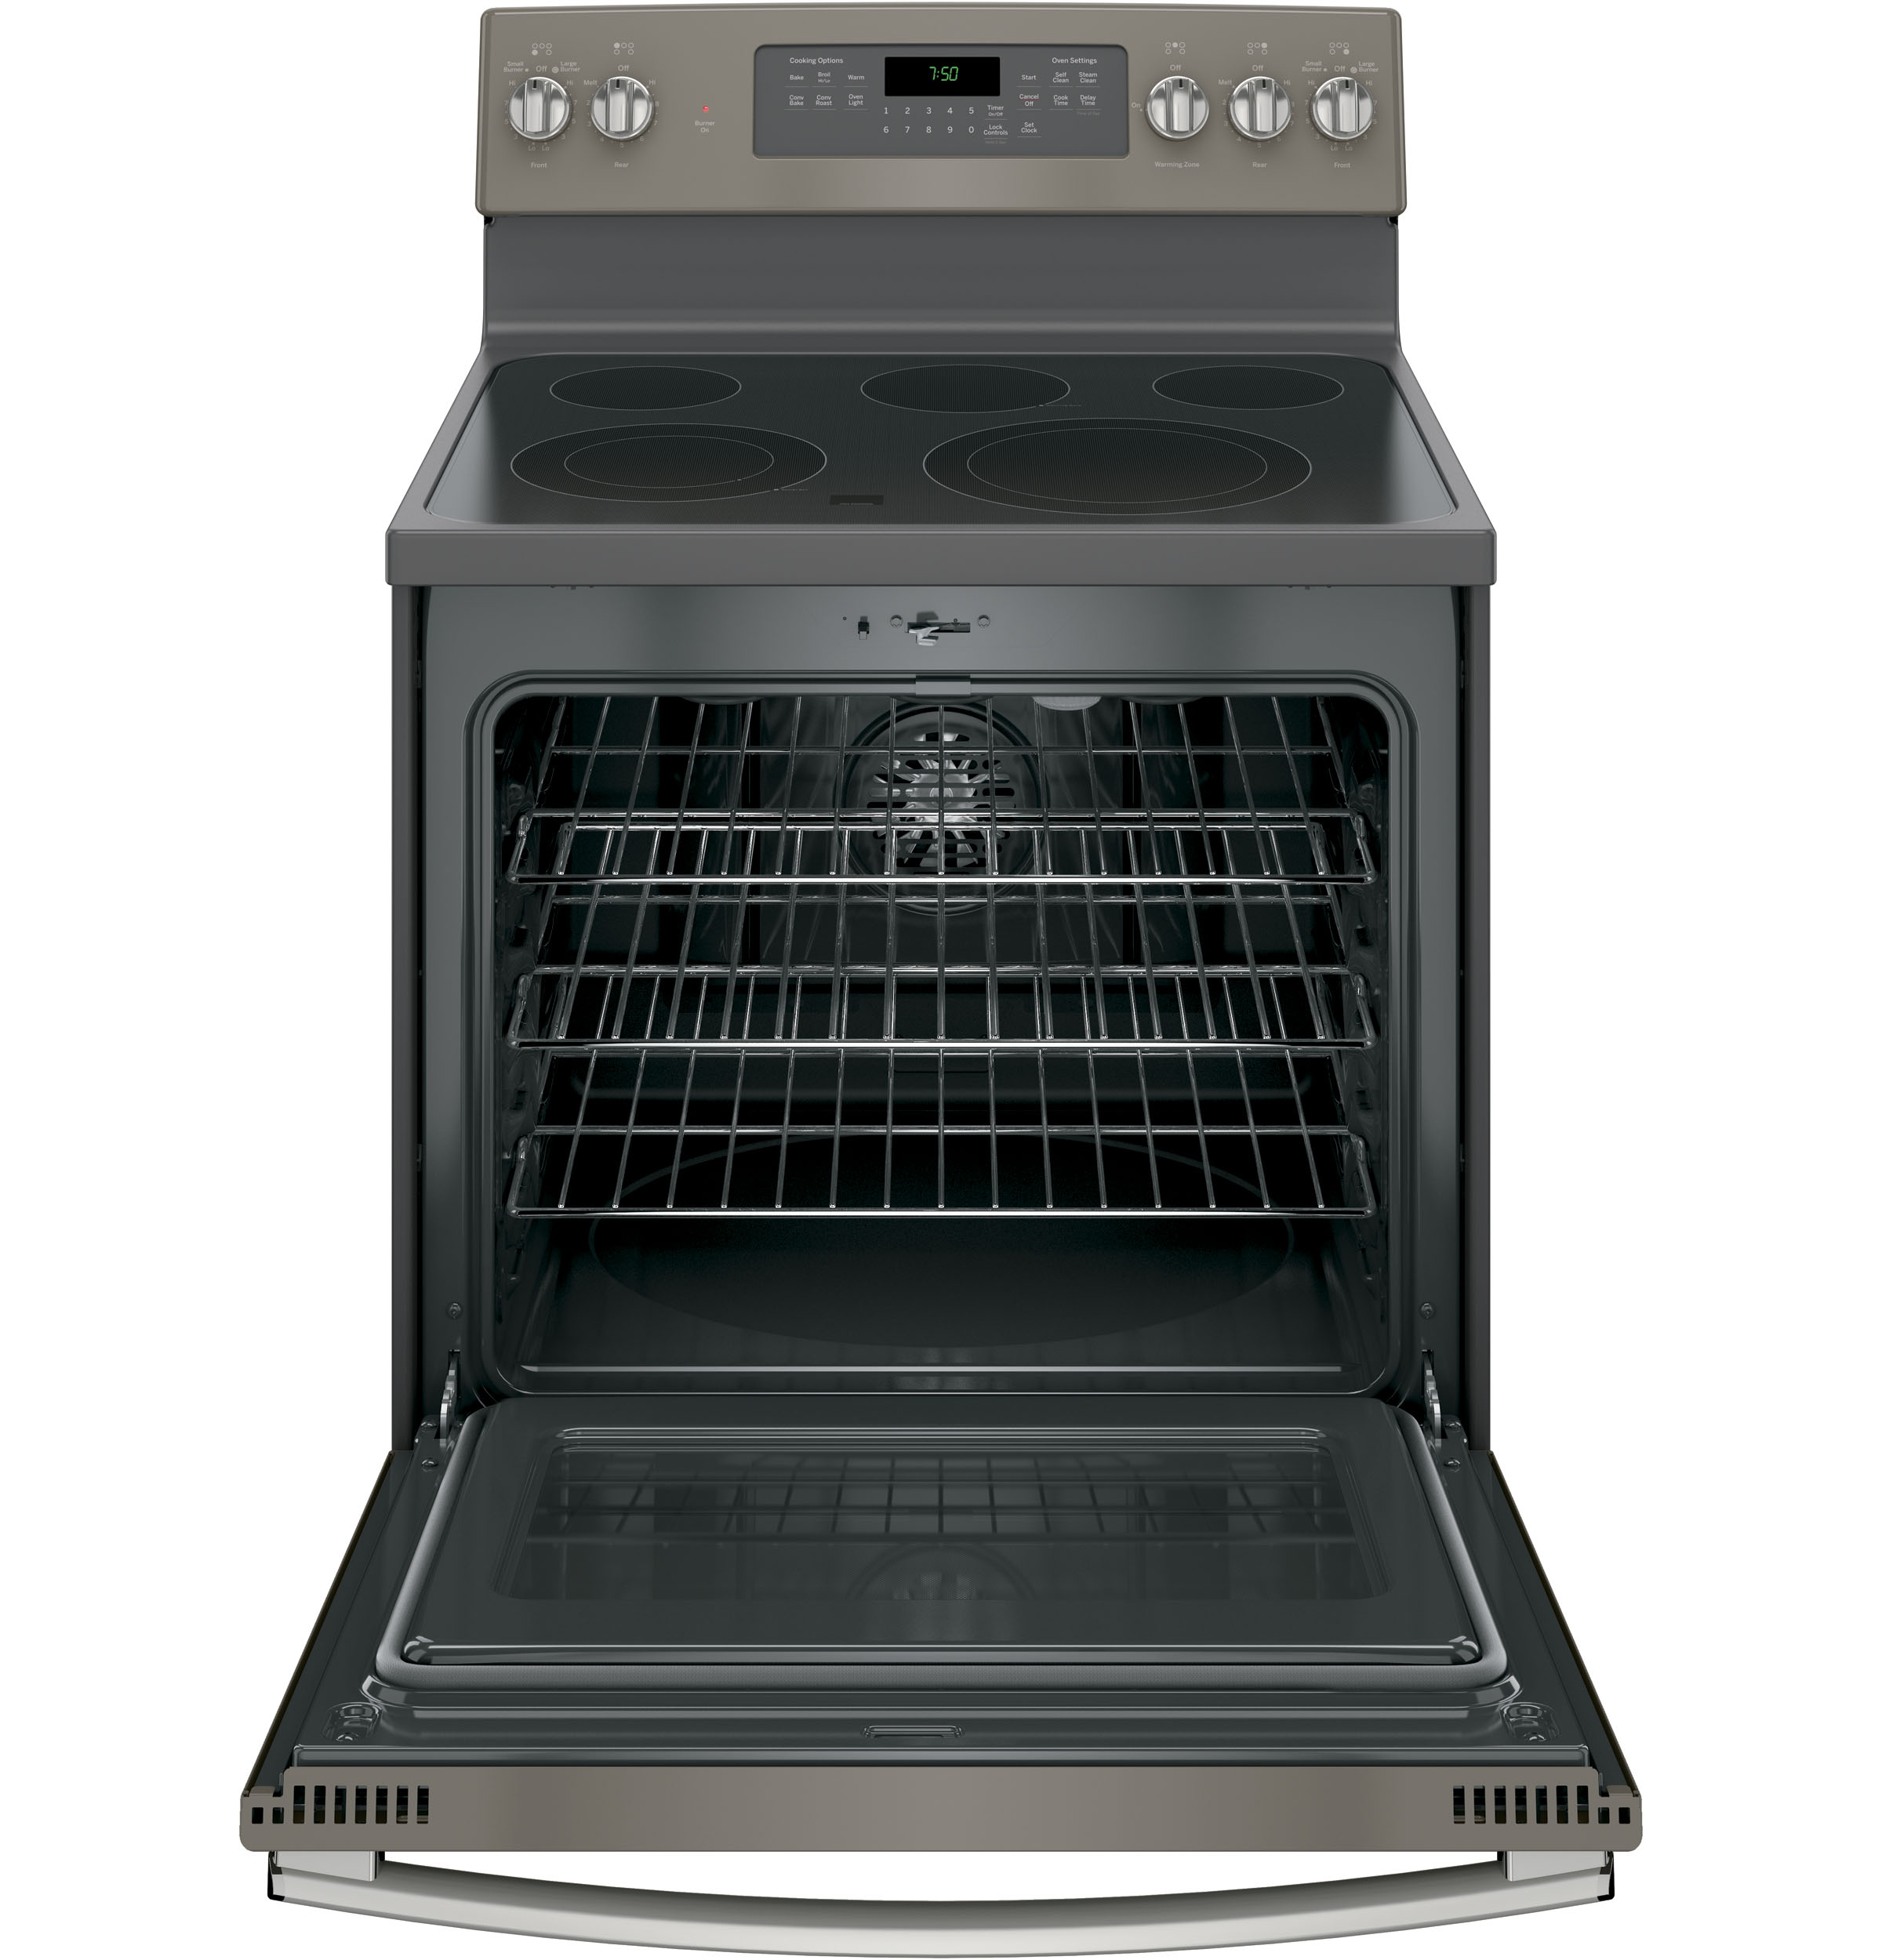 GE Appliances JB750EJES 5.3 cu. ft. Freestanding Electric Range w/ True Convection - Slate